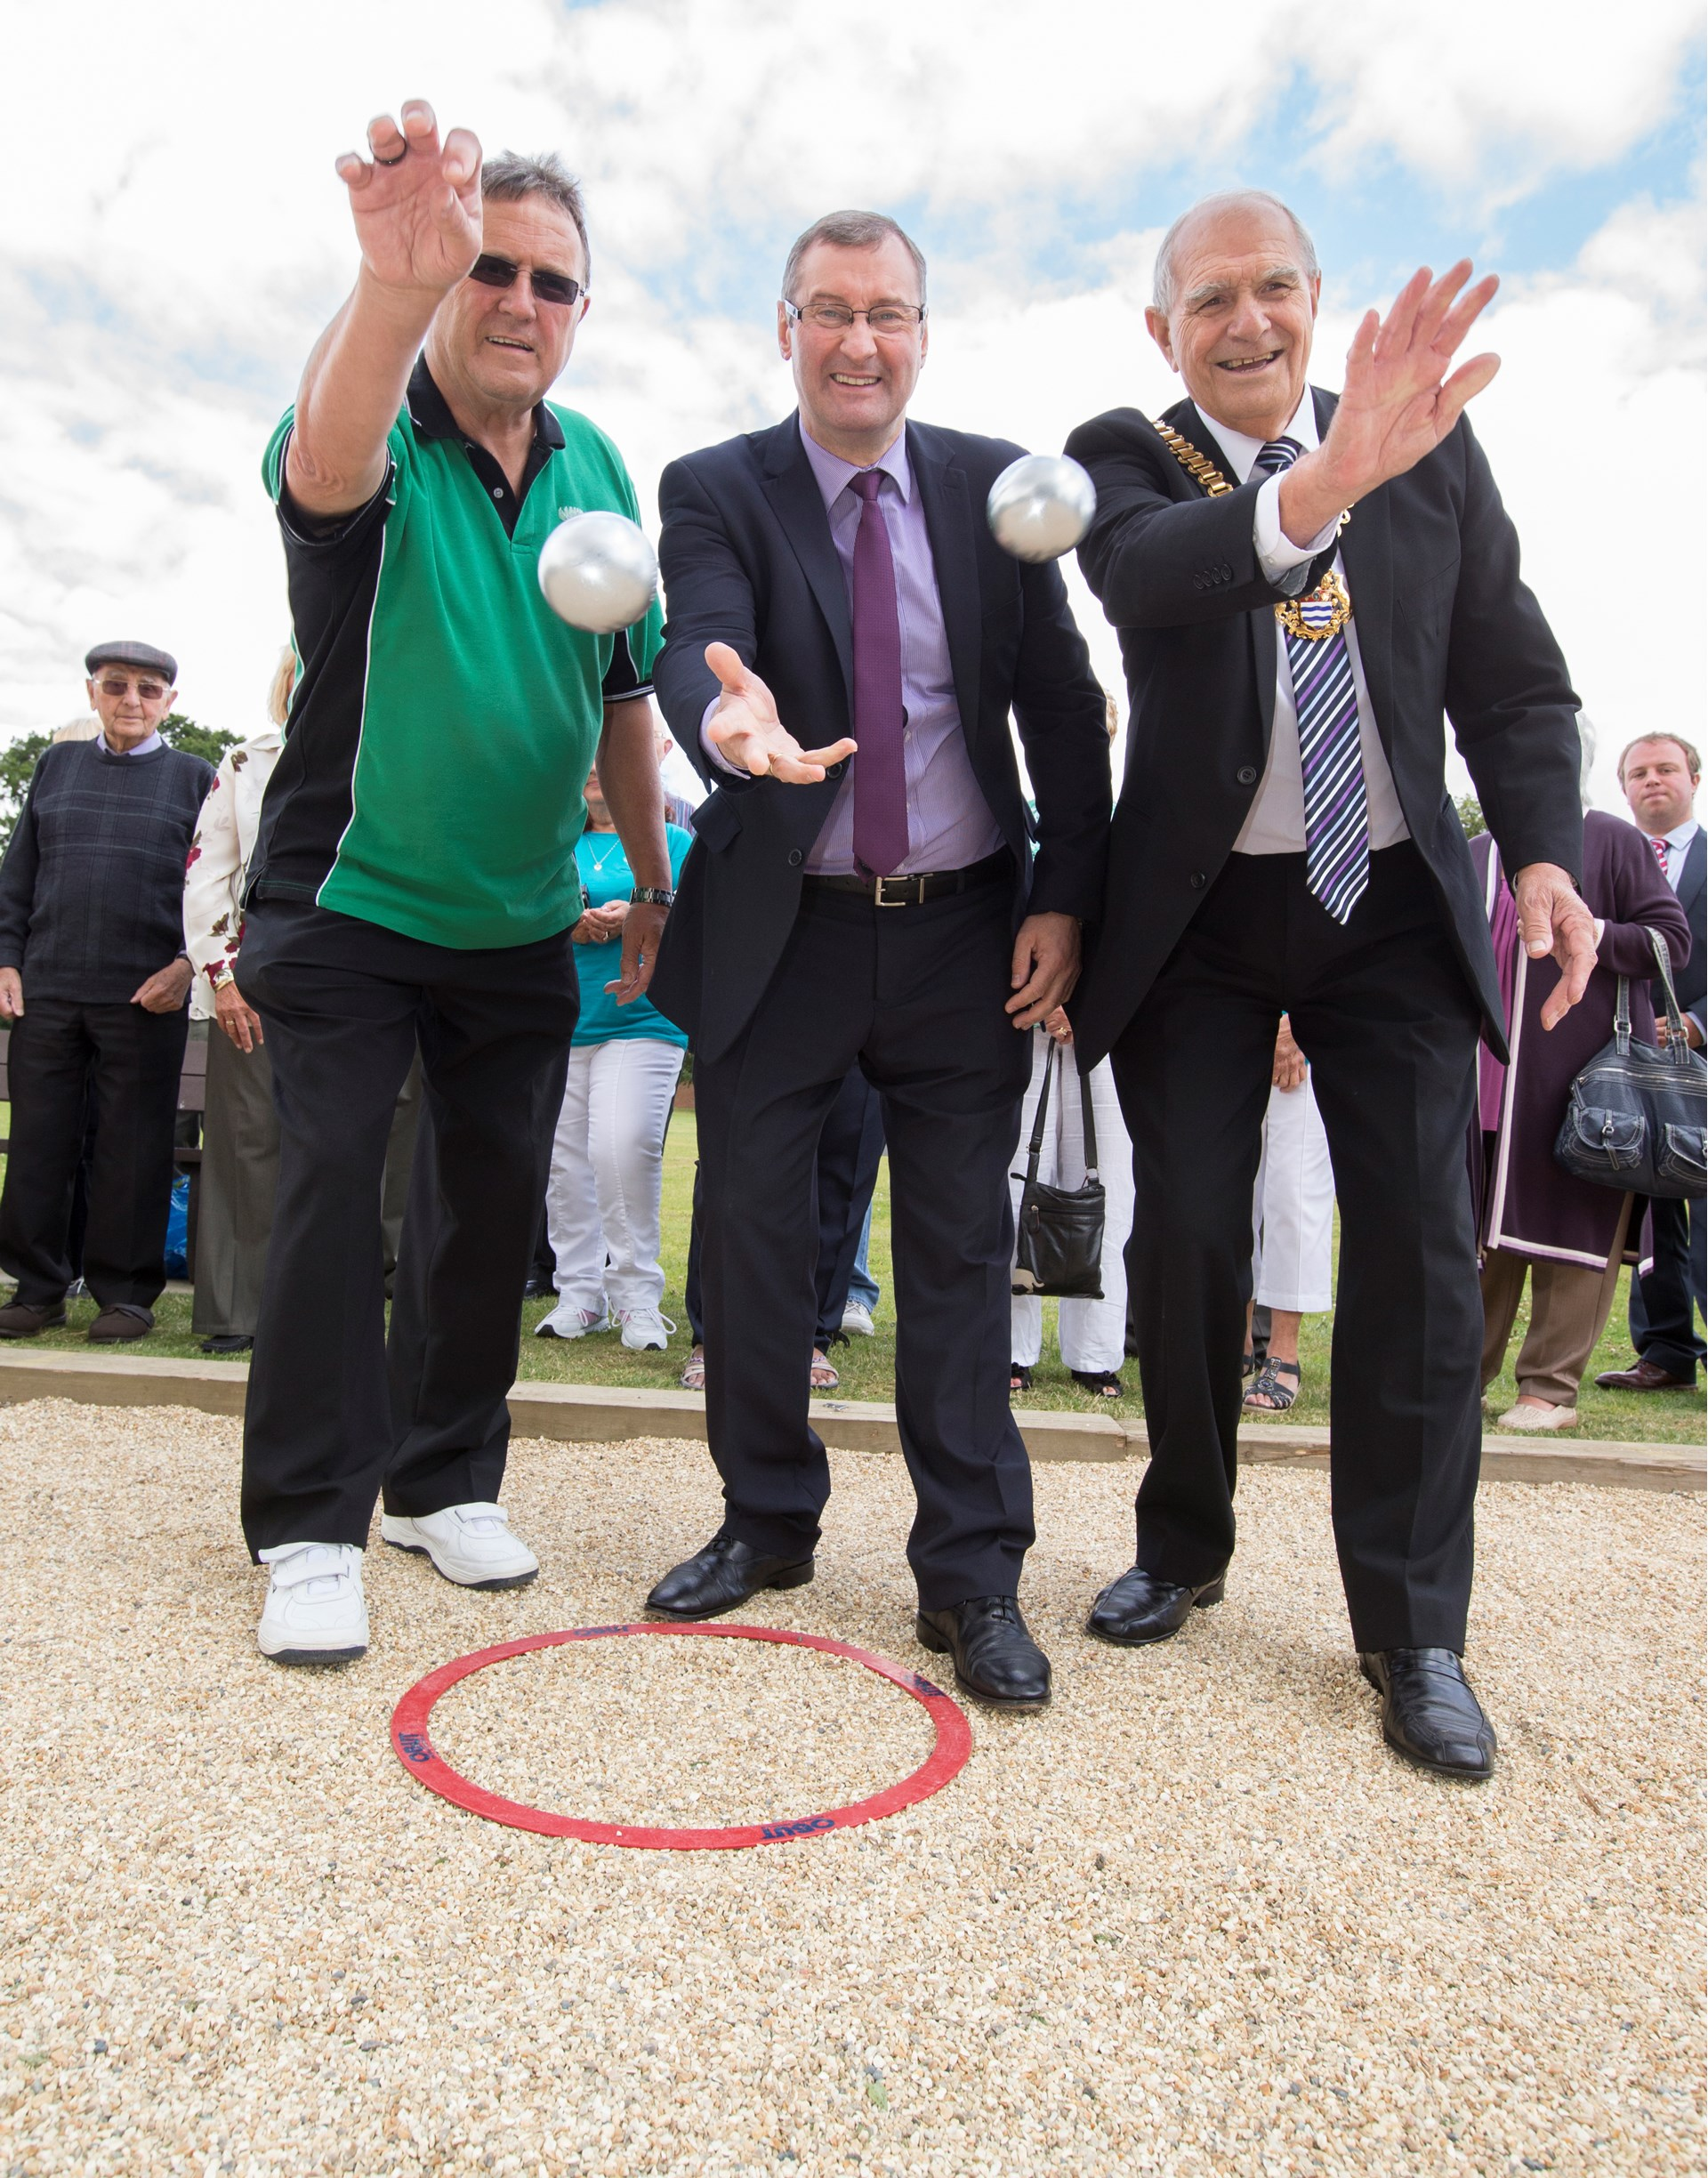 The Fernwood six lane piste officially opened by the Mayor of Newark, Mr Bob Crowe on 29th July 2015